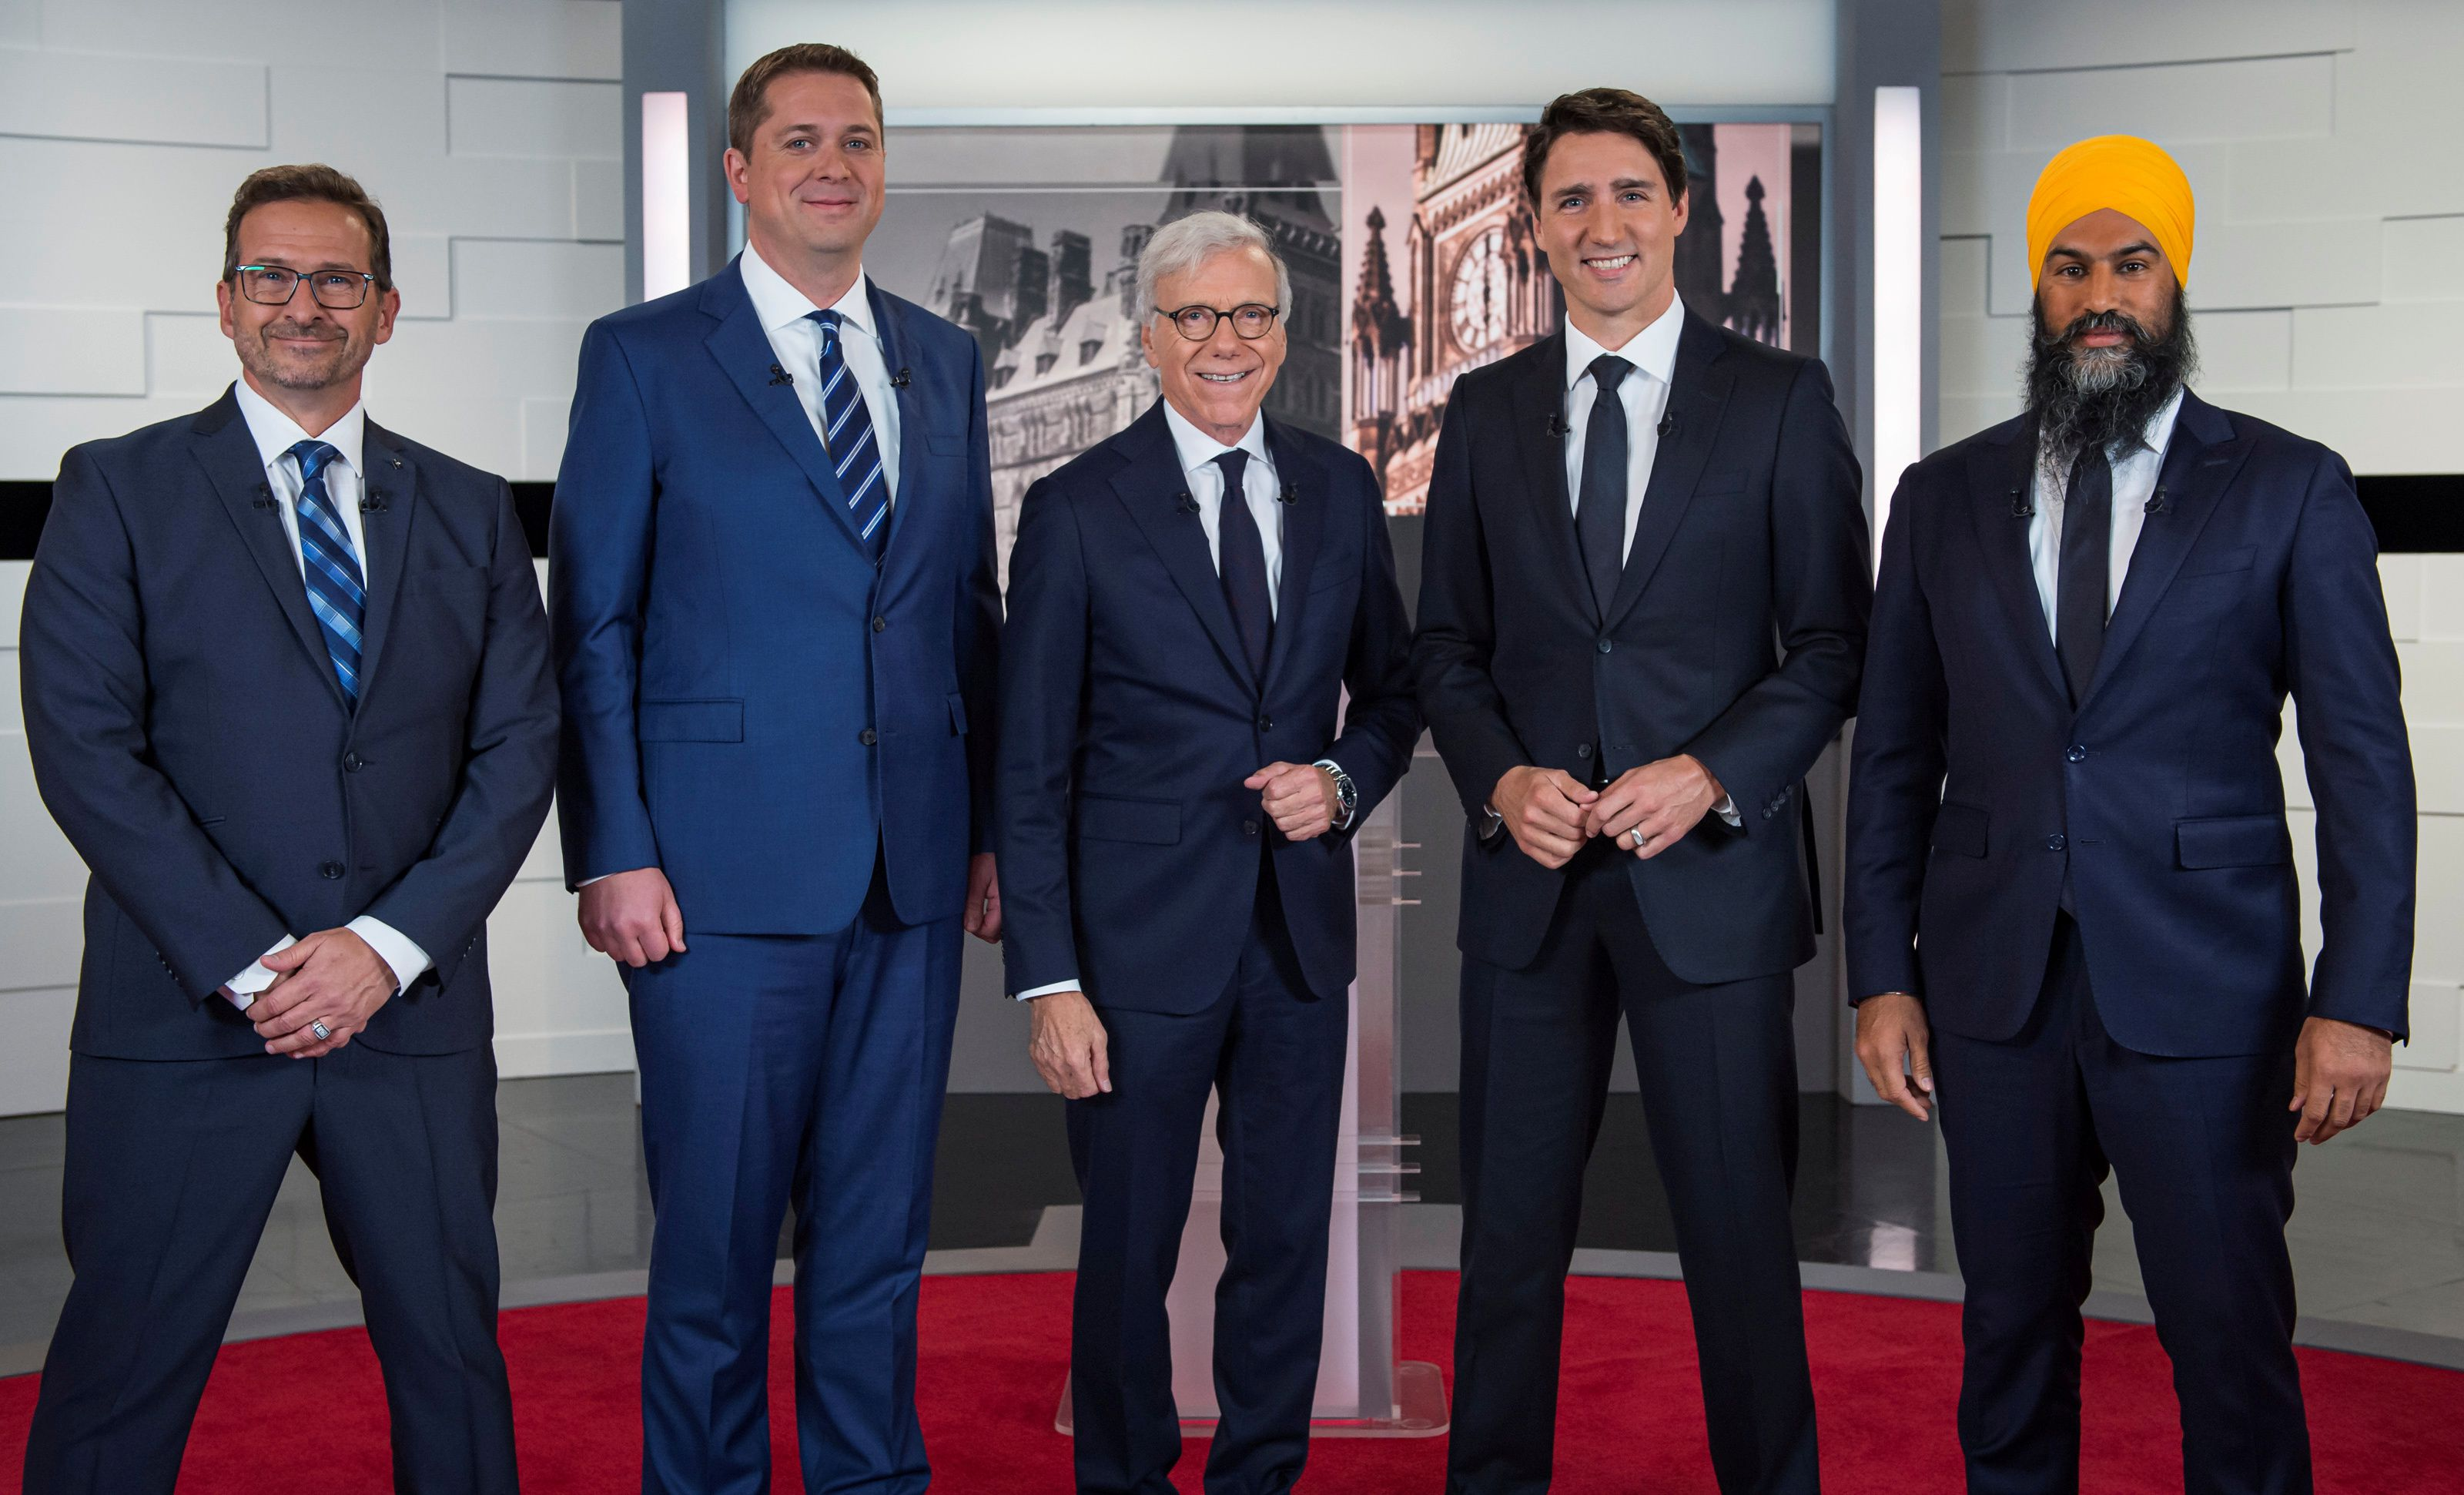 It's high time we took federal election TV debates with the seriousness they deserve